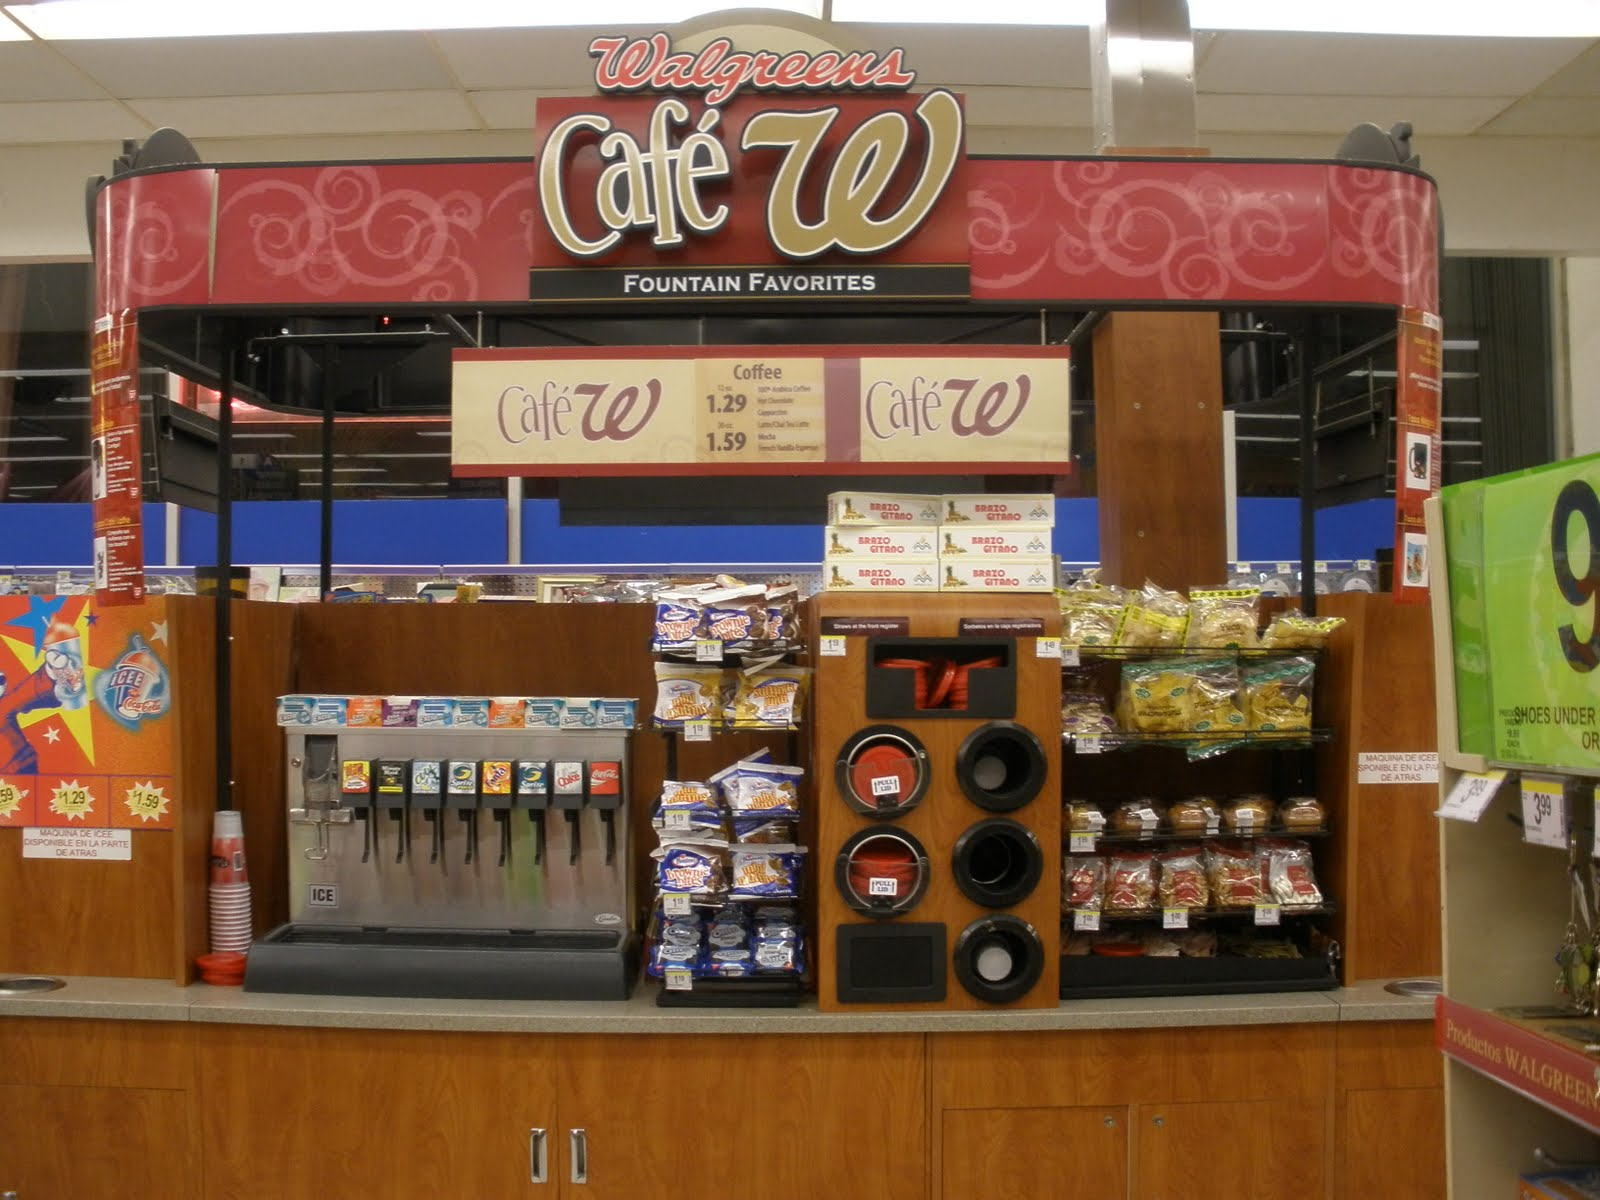 foodservice solutions  retail foodservice transitions from a state flux to a clear path for continued growth